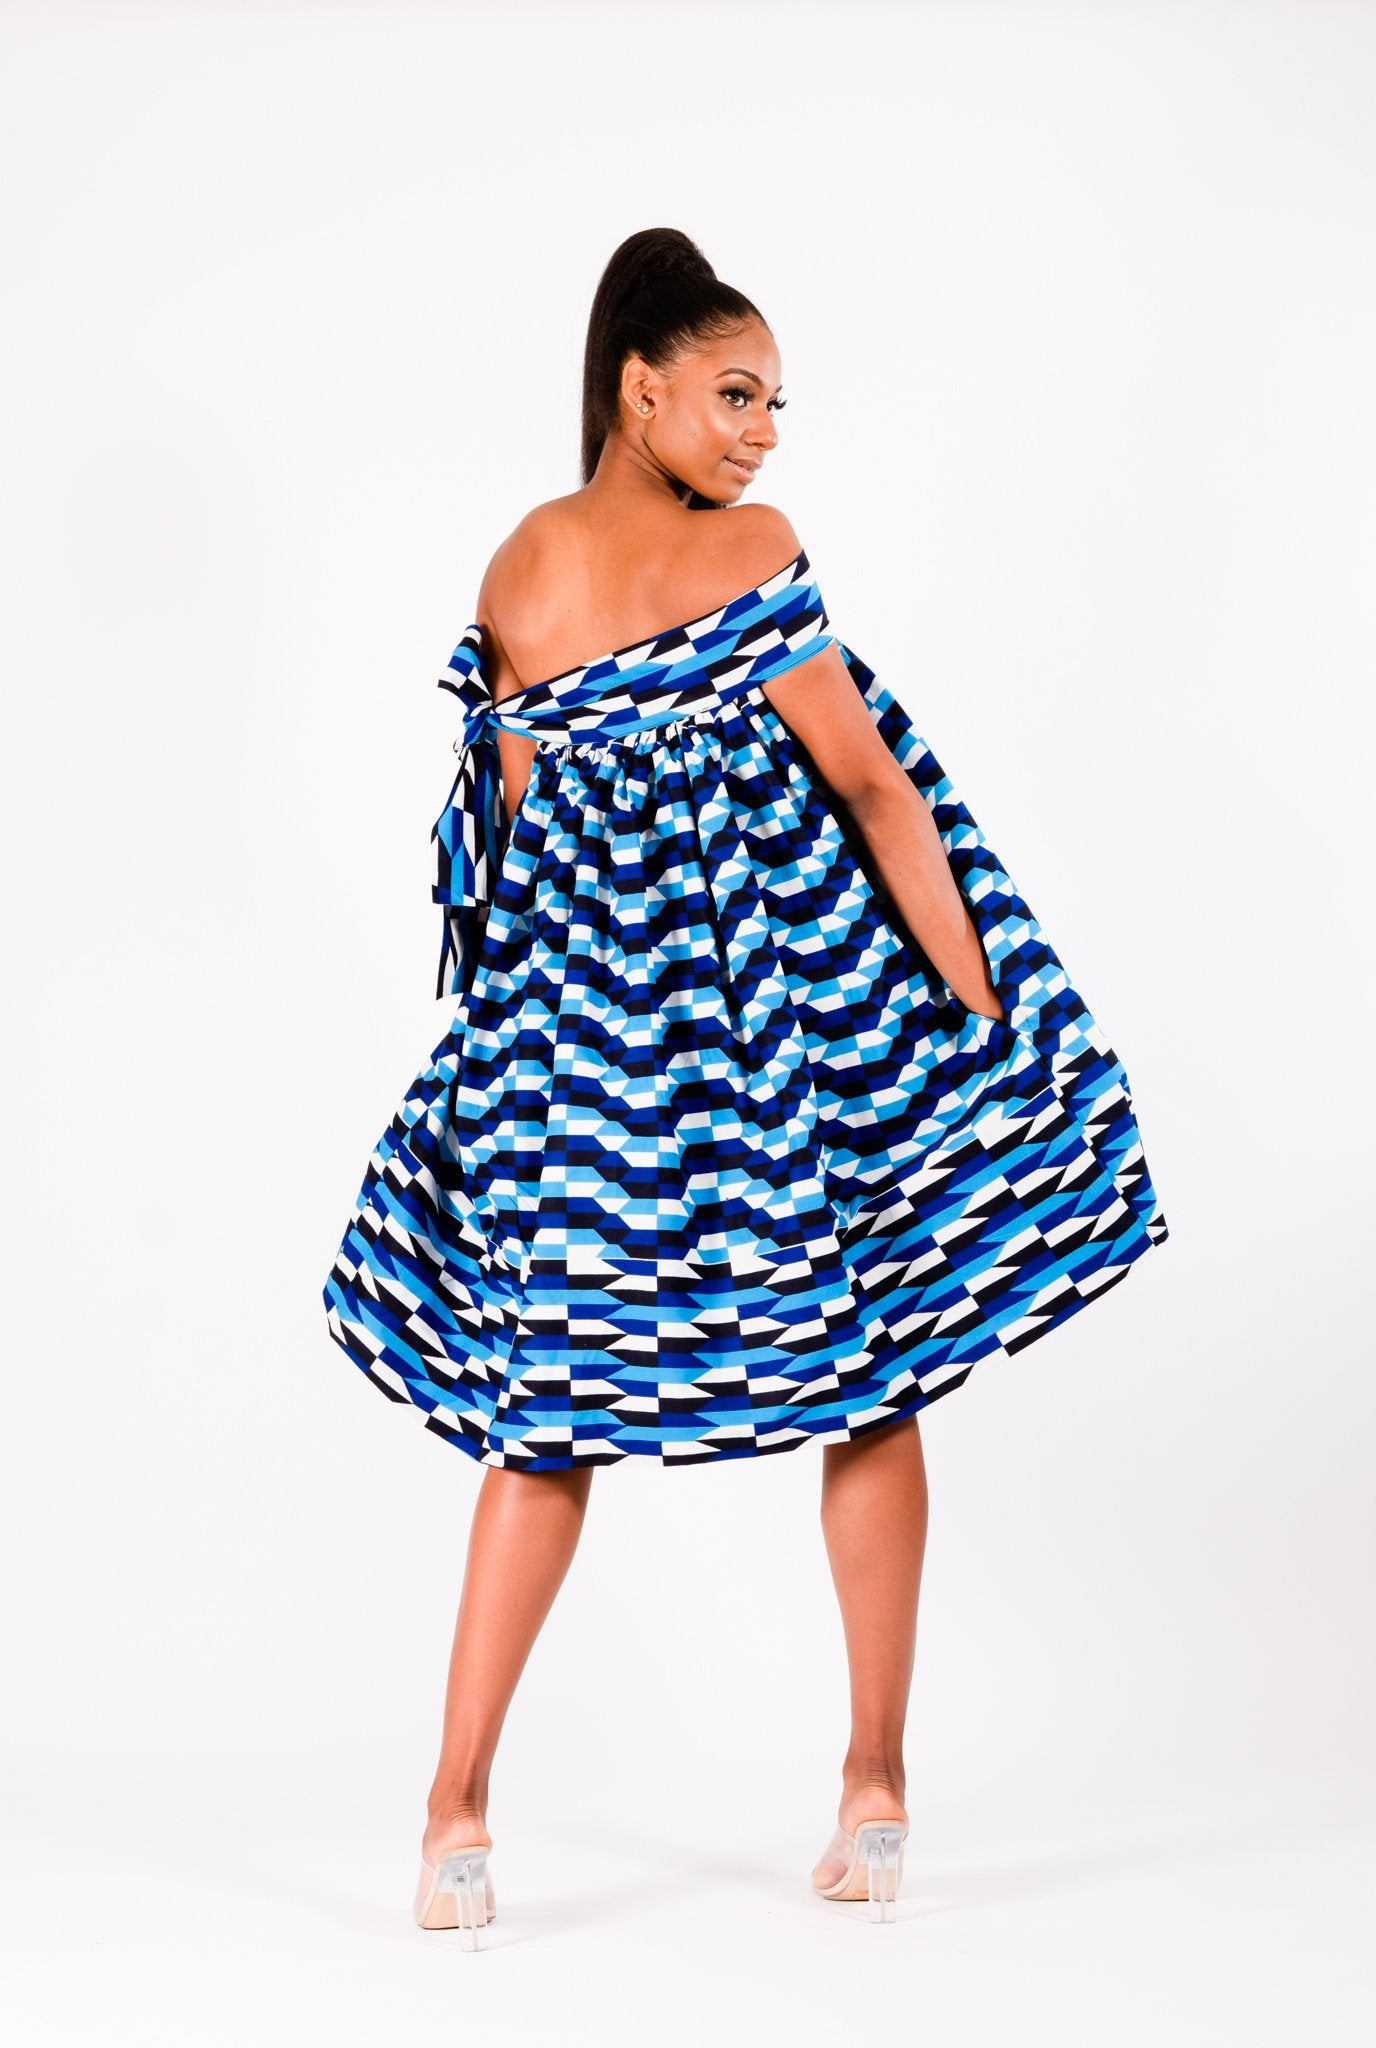 ADEY AFRICAN PRINT KENTE UMBRELLA DRESS